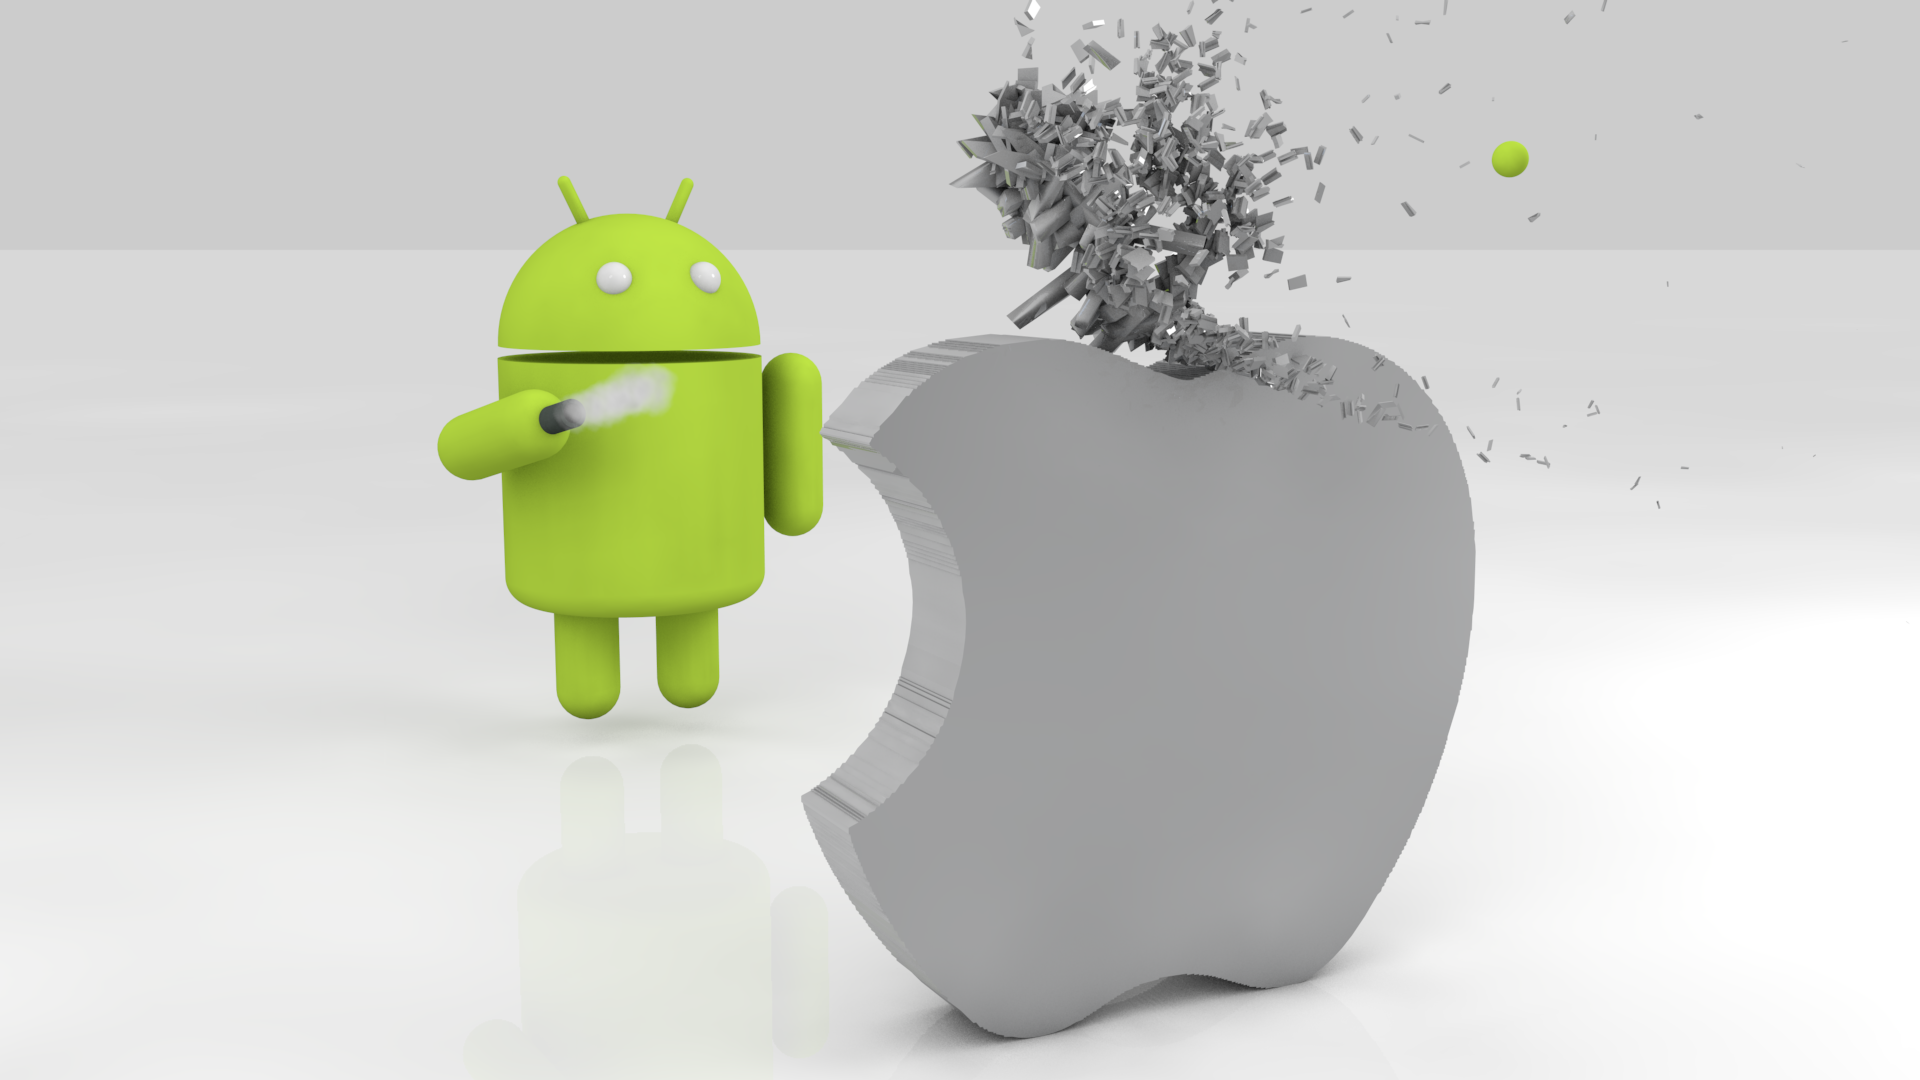 Android Apple 1920x1080